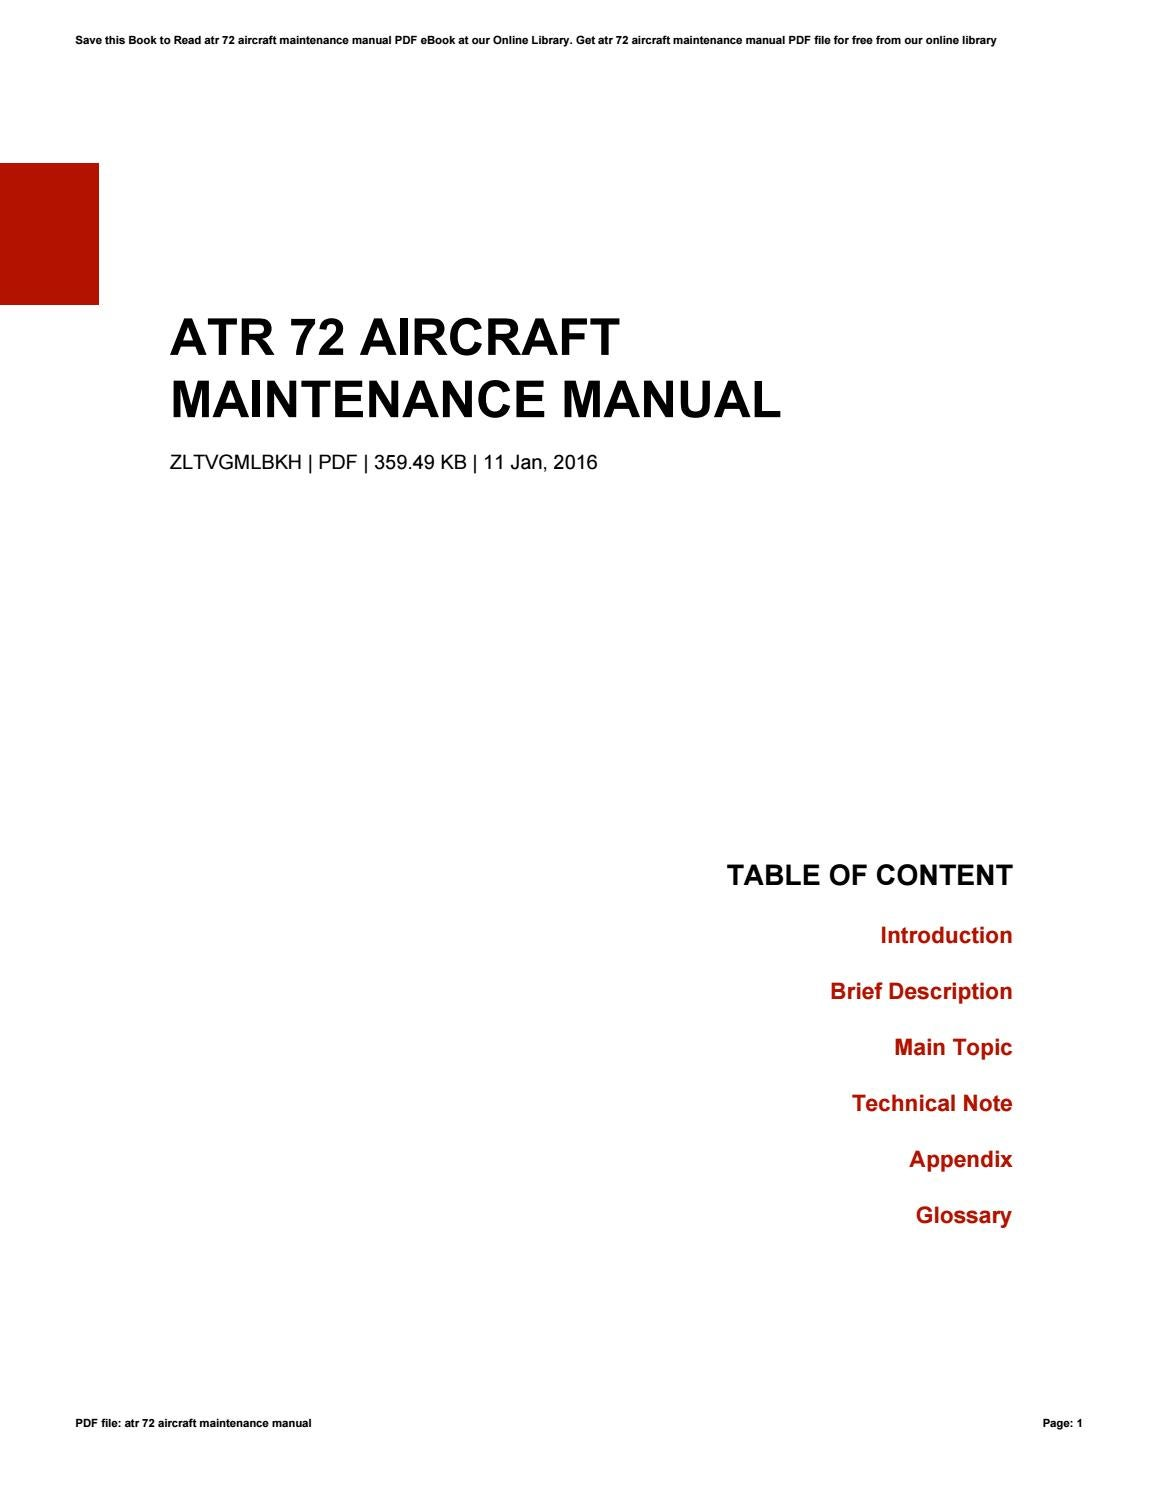 Aircraft Maintenance Manual B777 Auto Electrical Wiring Diagram Main Fuse Box 2005 Ssr Suzuki Dr350 Caravan Boat Trailer 2003 350z Radio For 110 Atv 1970 Gibson Les